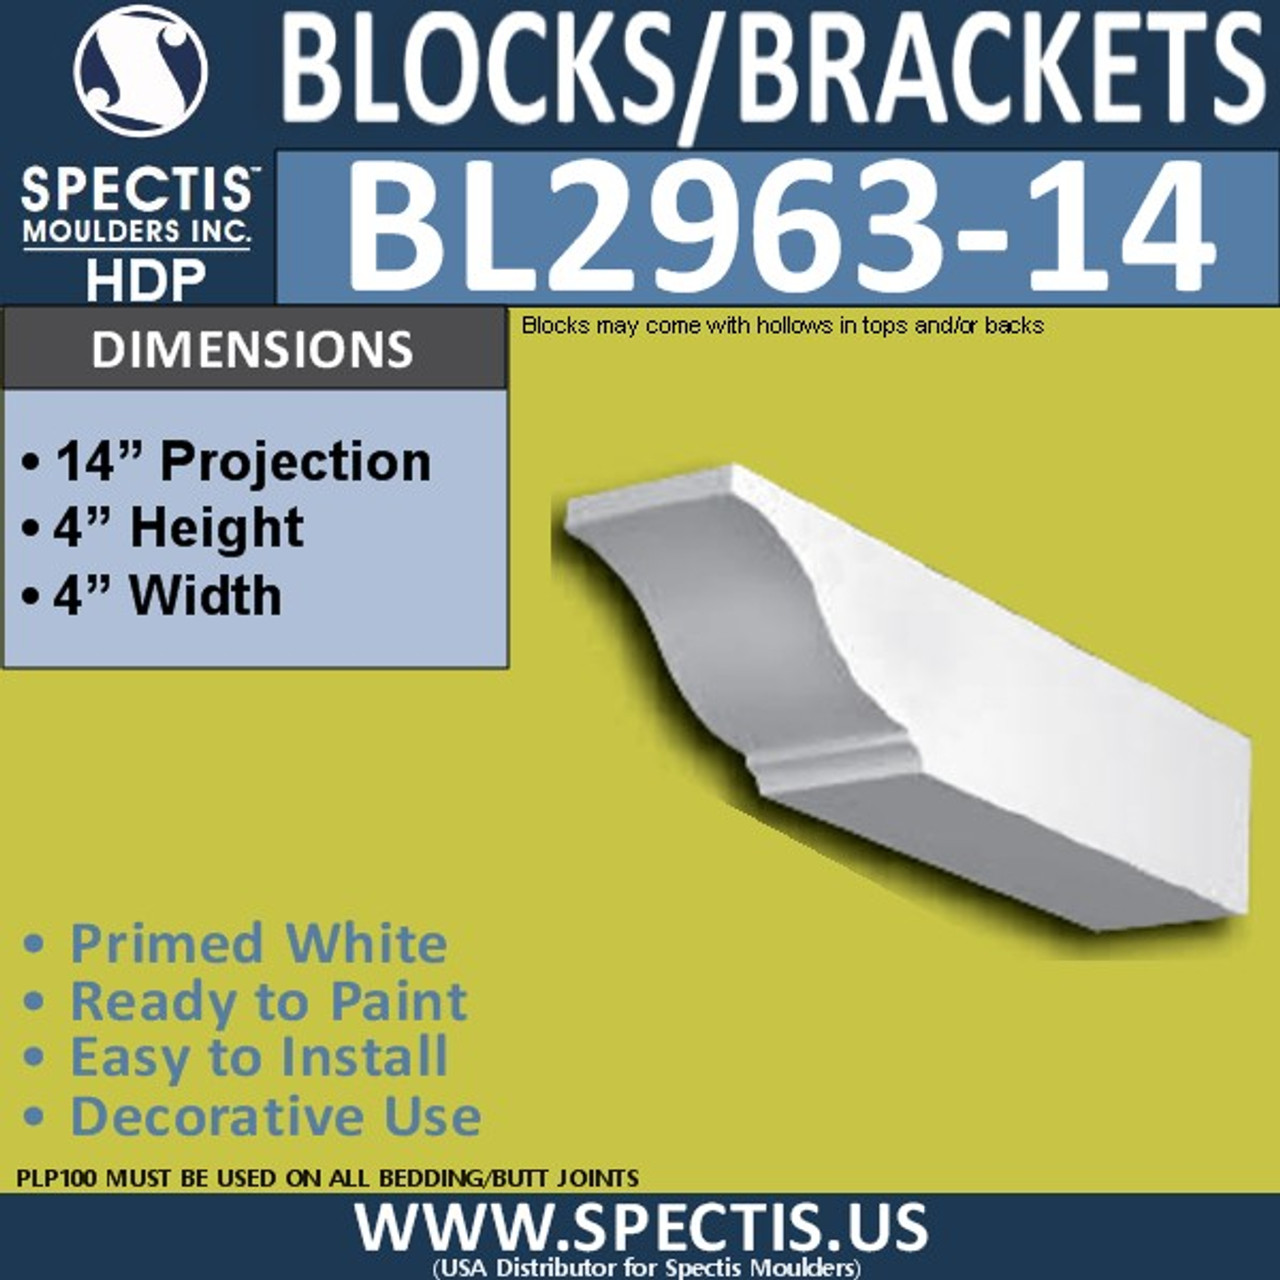 "BL2963-14 Eave Block or Bracket 4""W x 4""H x 14"" P"